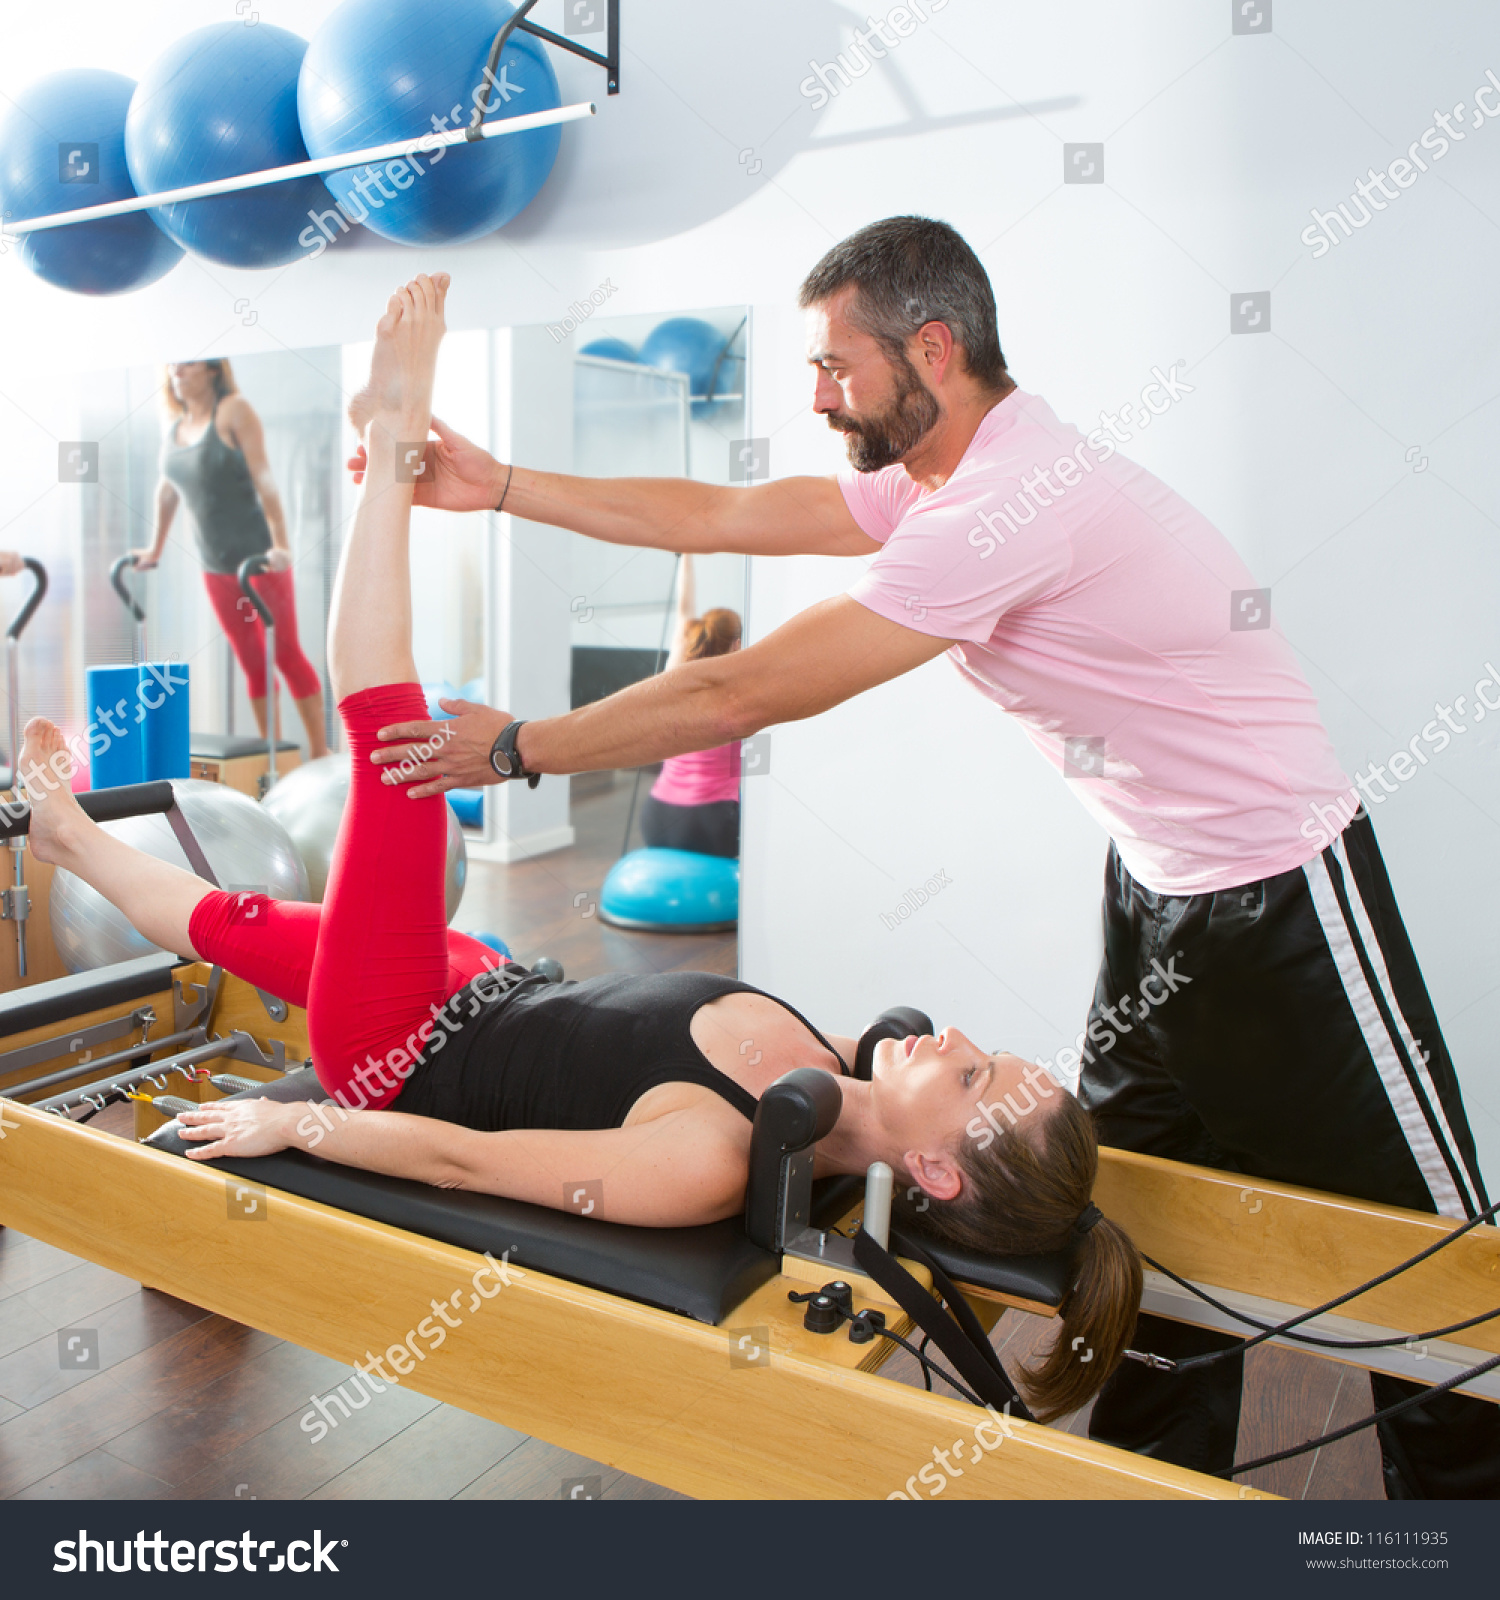 Woman Pilates Chair Exercises Fitness Stock Photo: Pilates Aerobic Personal Trainer Instructor Man In